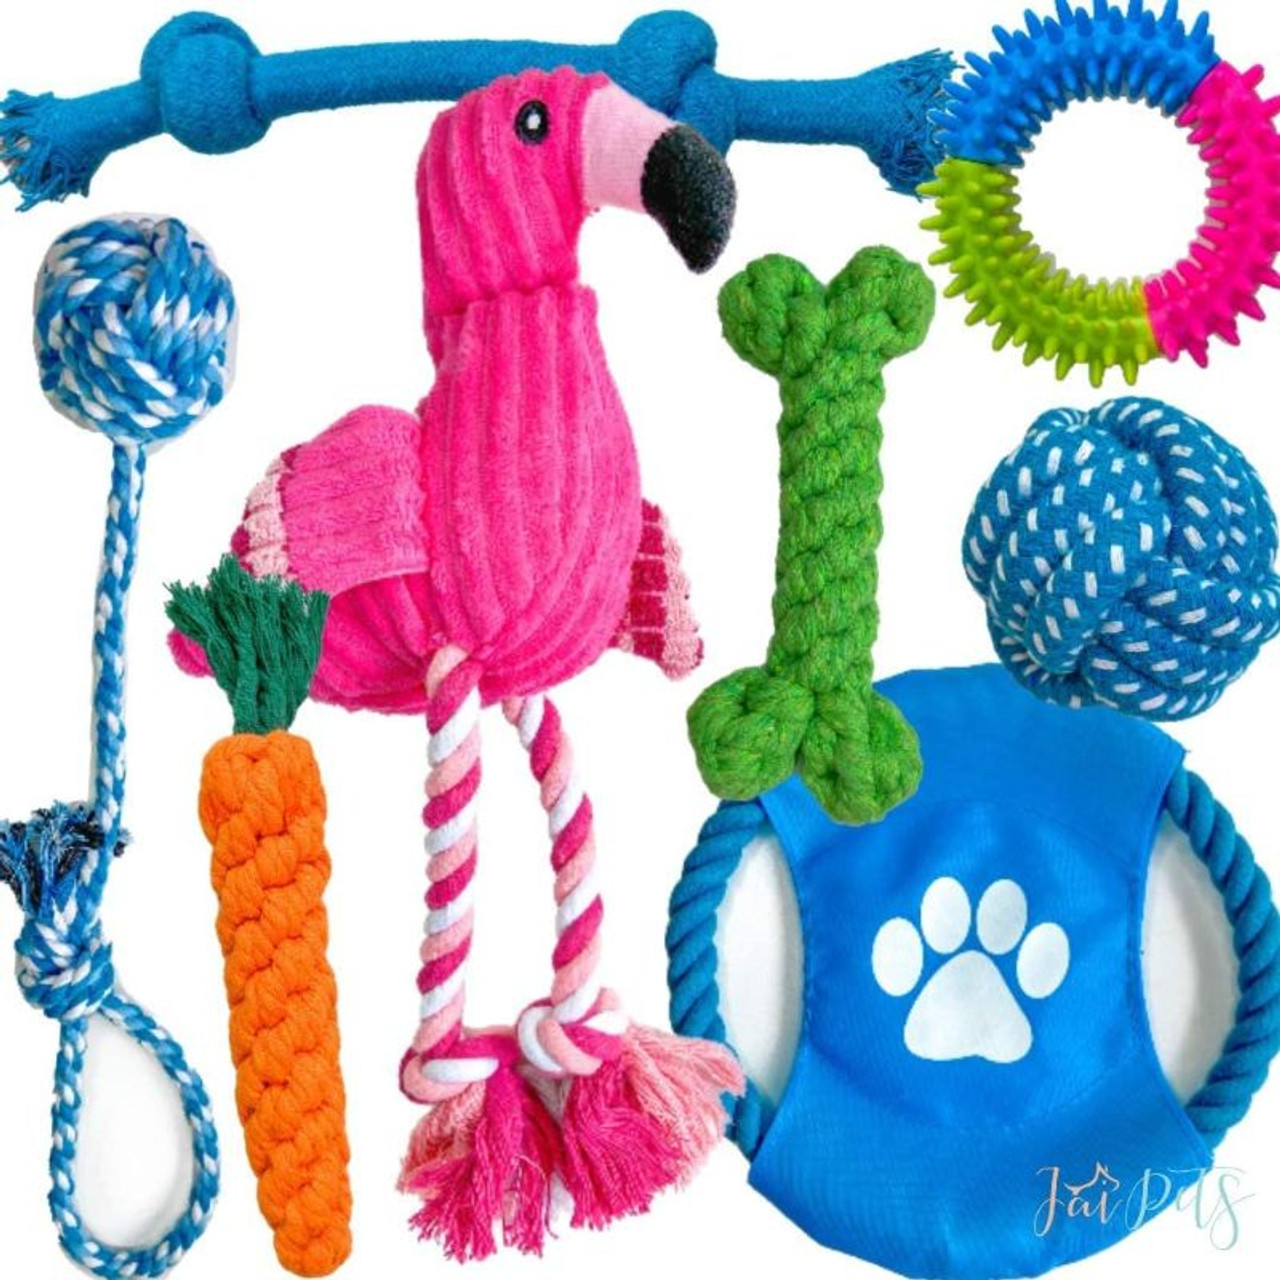 Dog Teething Toys for Puppies